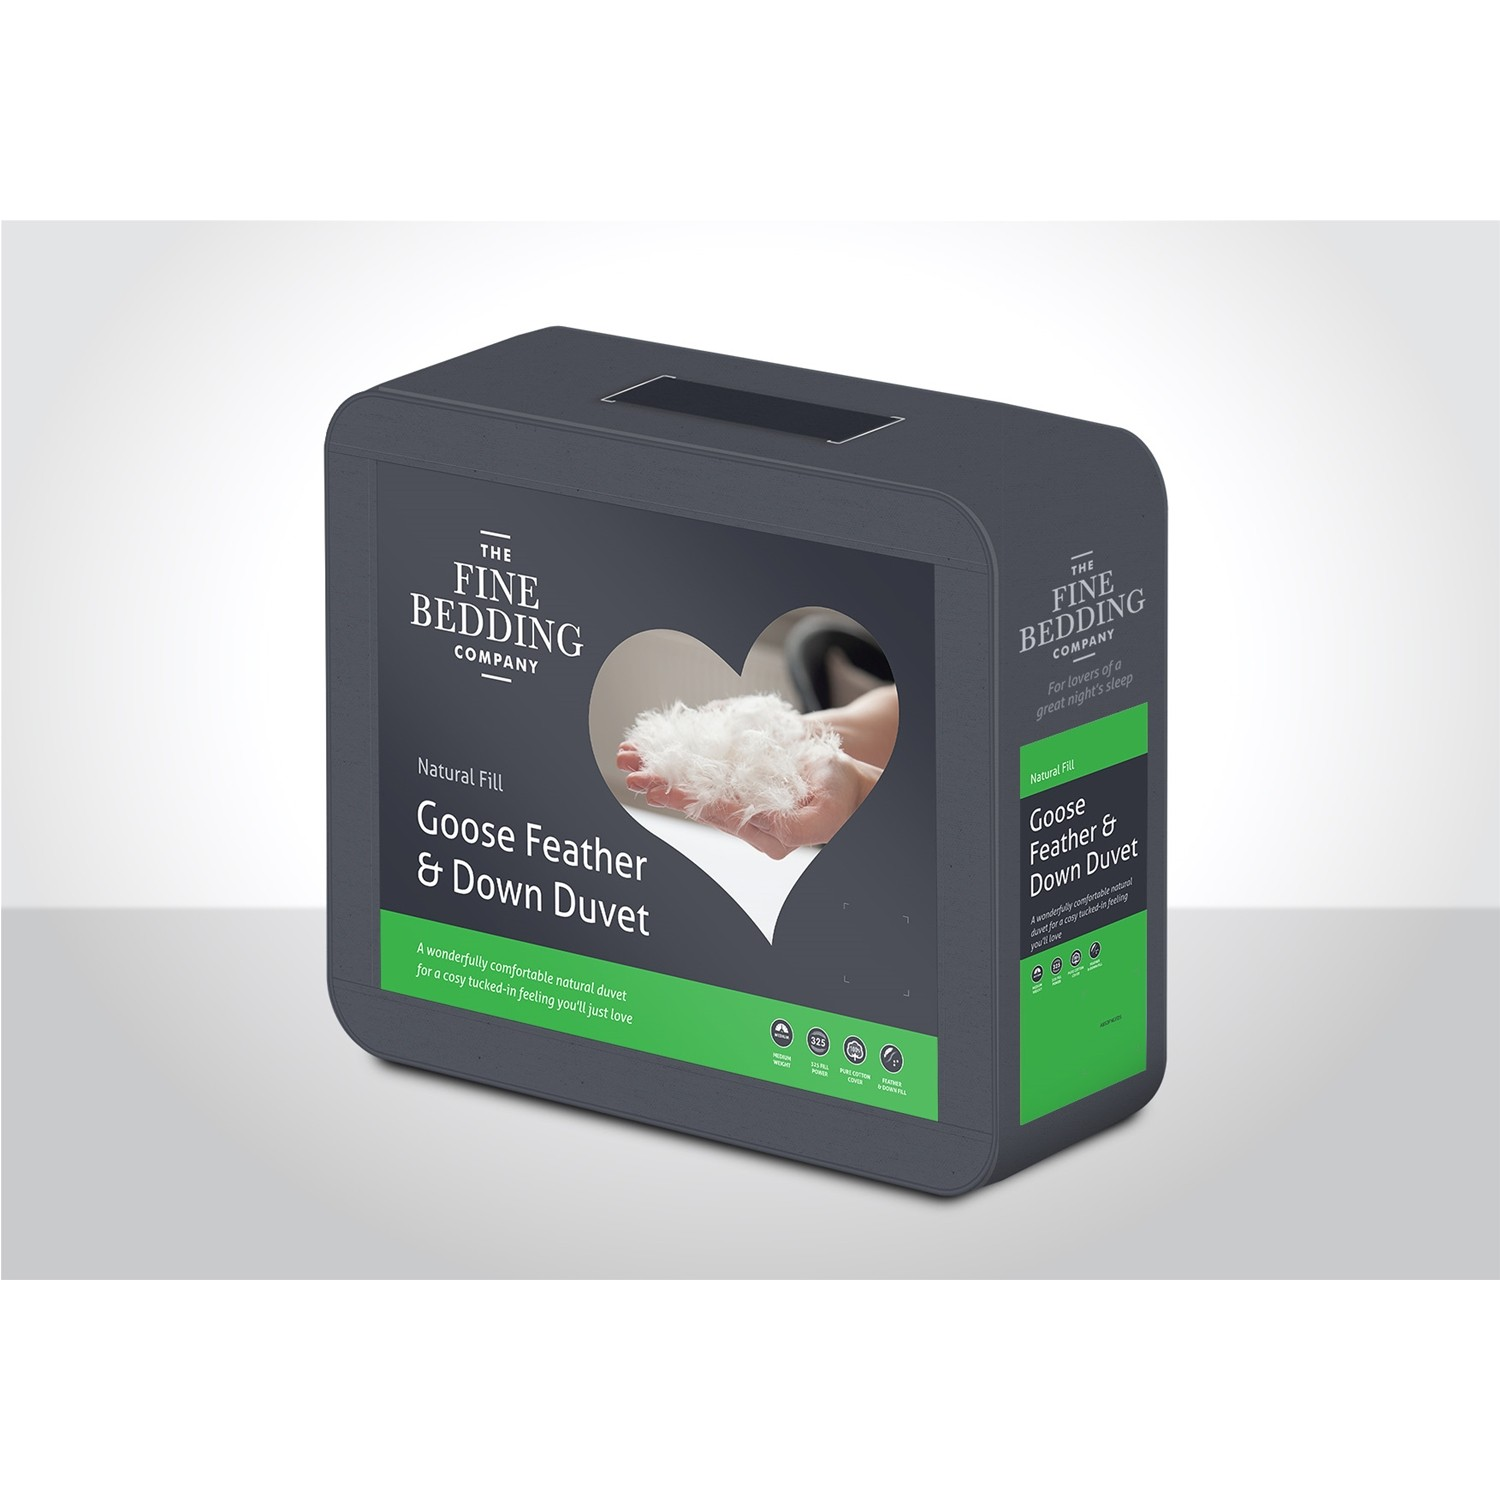 Fine Bedding Company Goose Feather Amp Down Duvet 13 5 Tog S